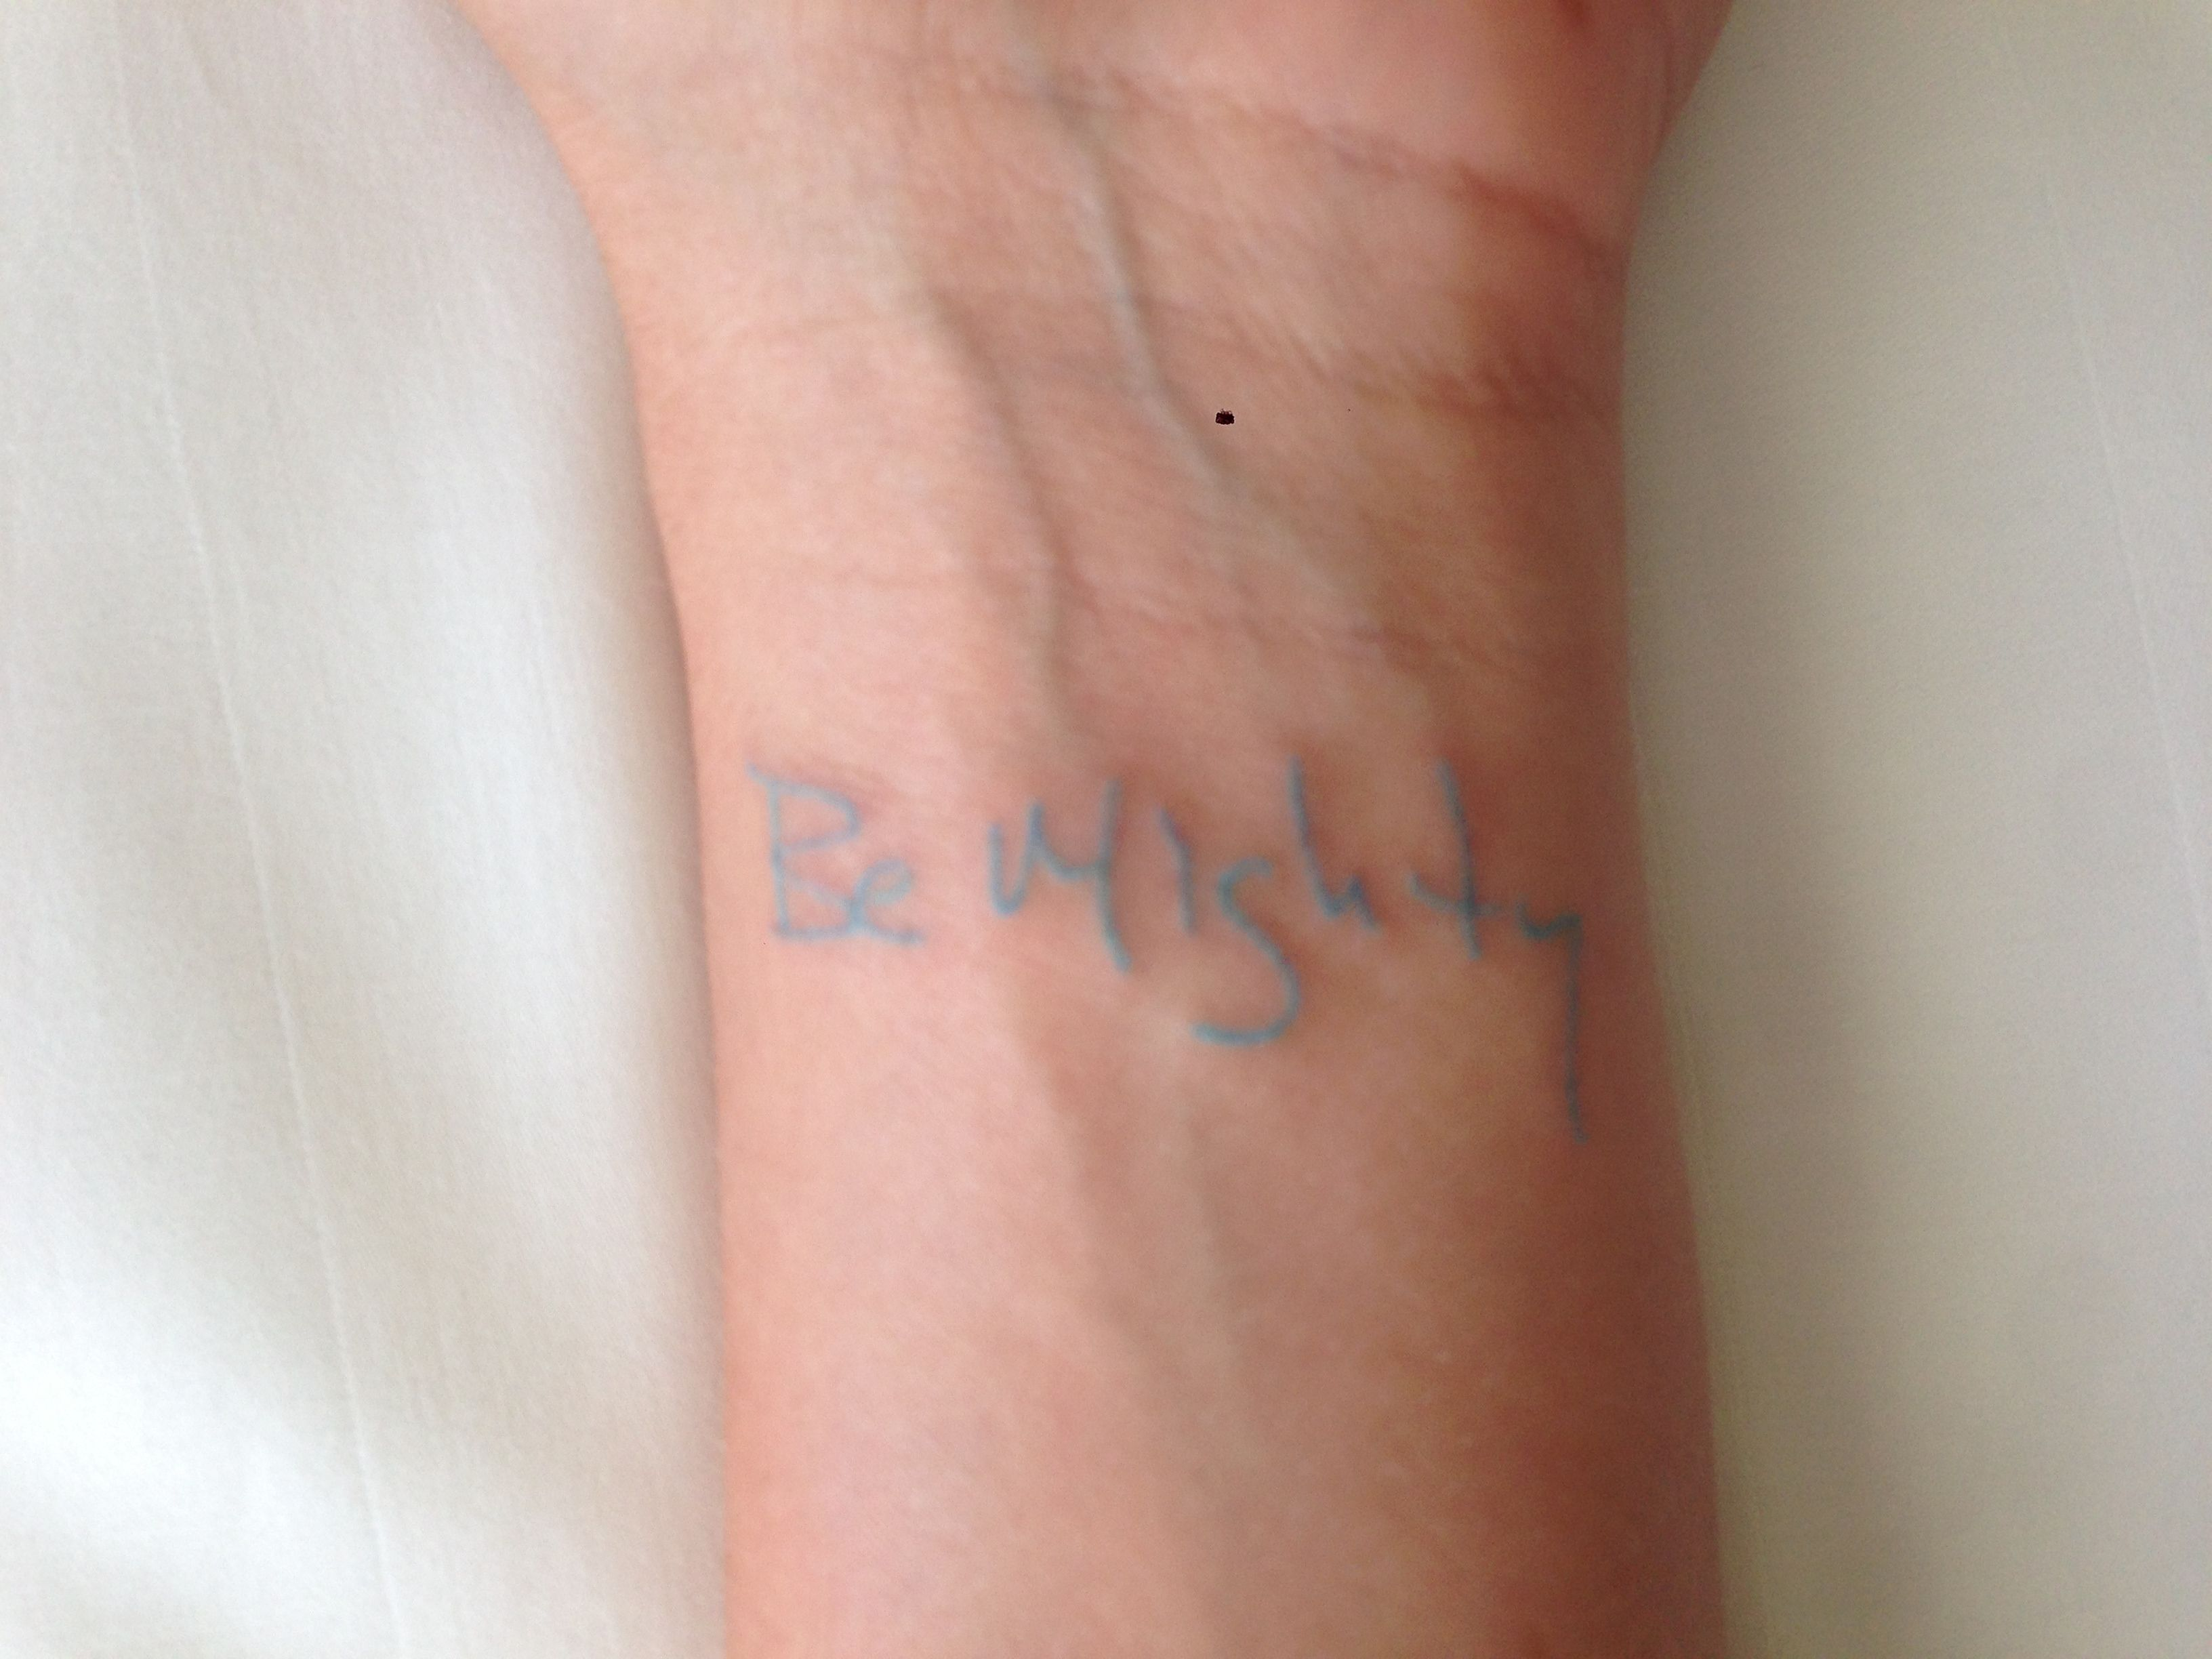 Wrist Tattoo In Light Blue Ink Instead Of Words It Would Be A